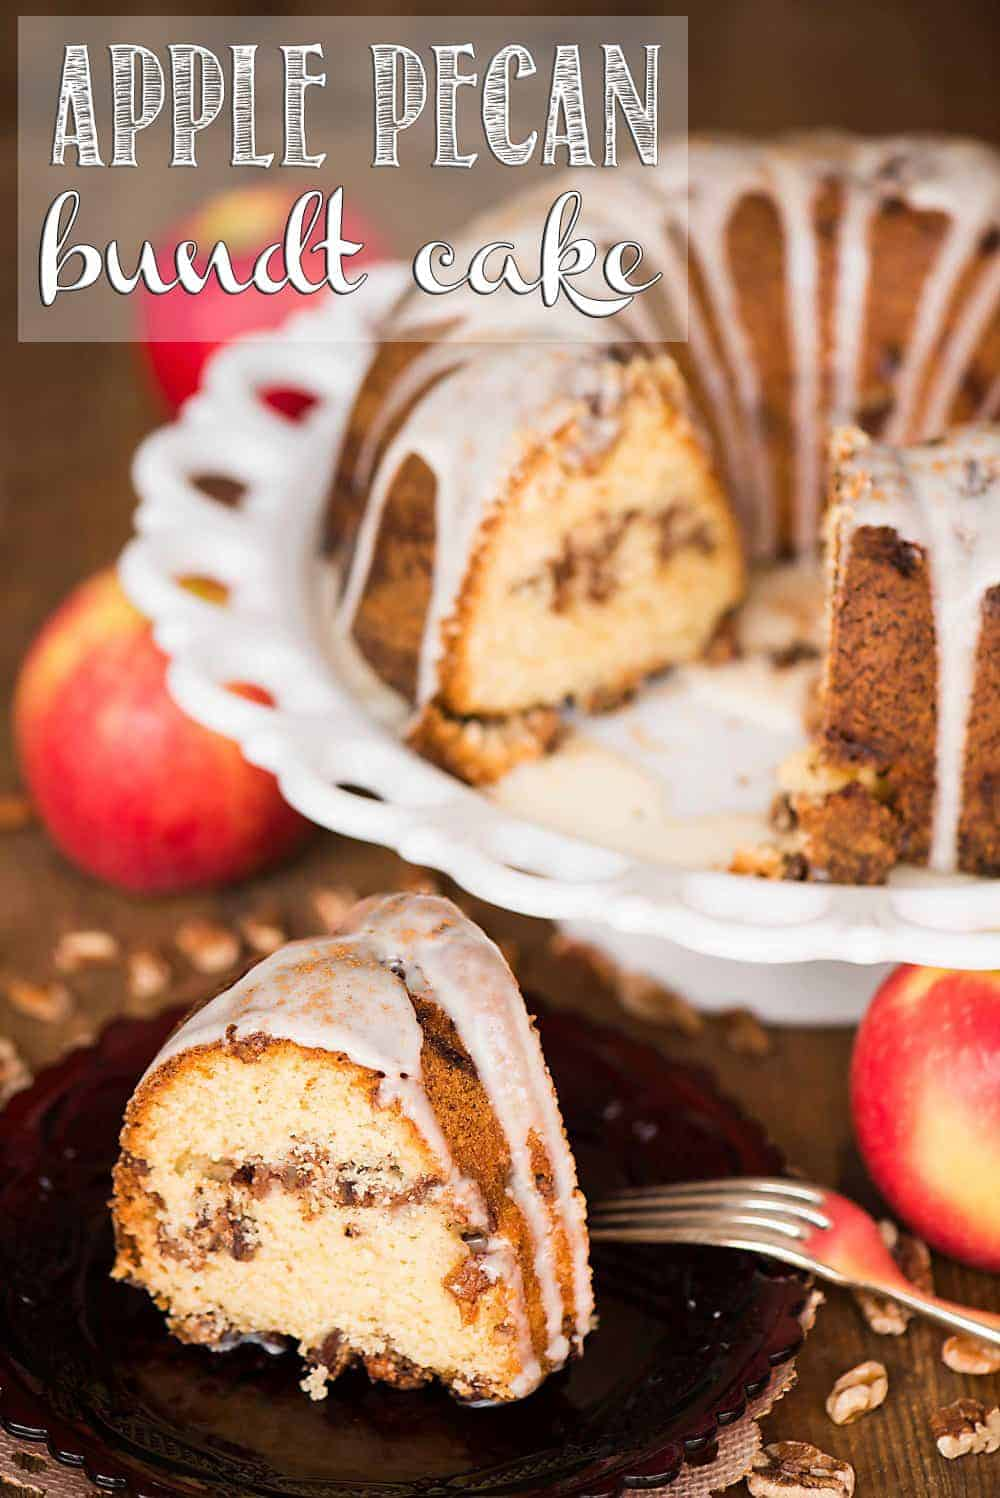 Apple Pecan Bundt Cake is an easy, made from scratch moist cake recipe full of your favorite fall flavors. It is perfect to enjoy for breakfast or dessert!